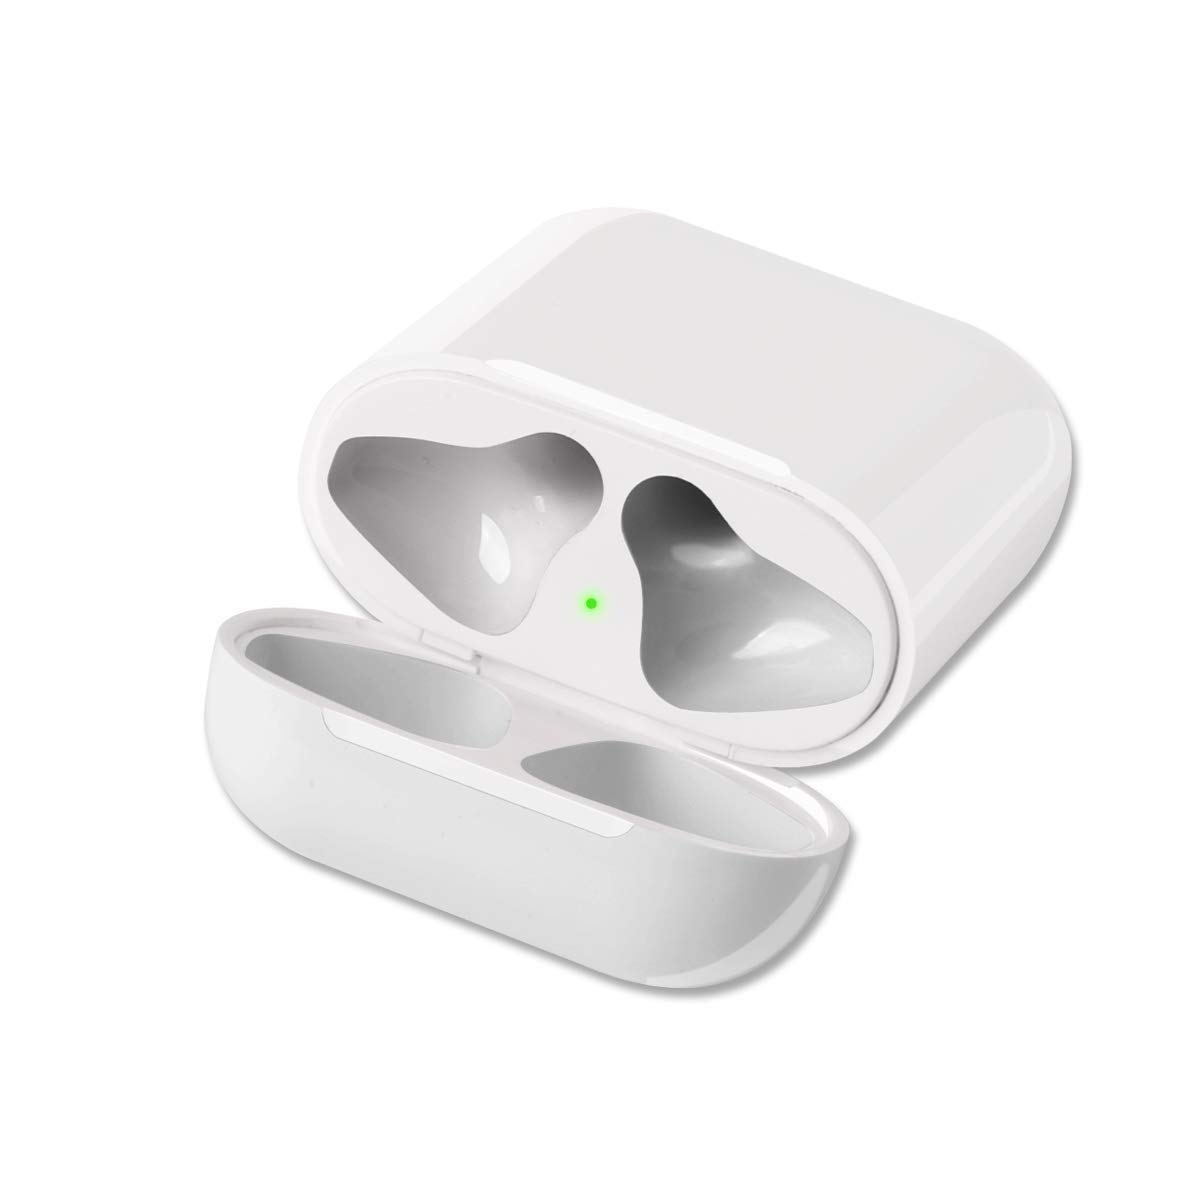 pretty nice ccf2c fe7a1 GreenCasty Airpod Charging Case Airpod Charger Adapter Compatible with  airpods Headphones Wireless Charging Case Replacement for Air Pods  Accessories ...